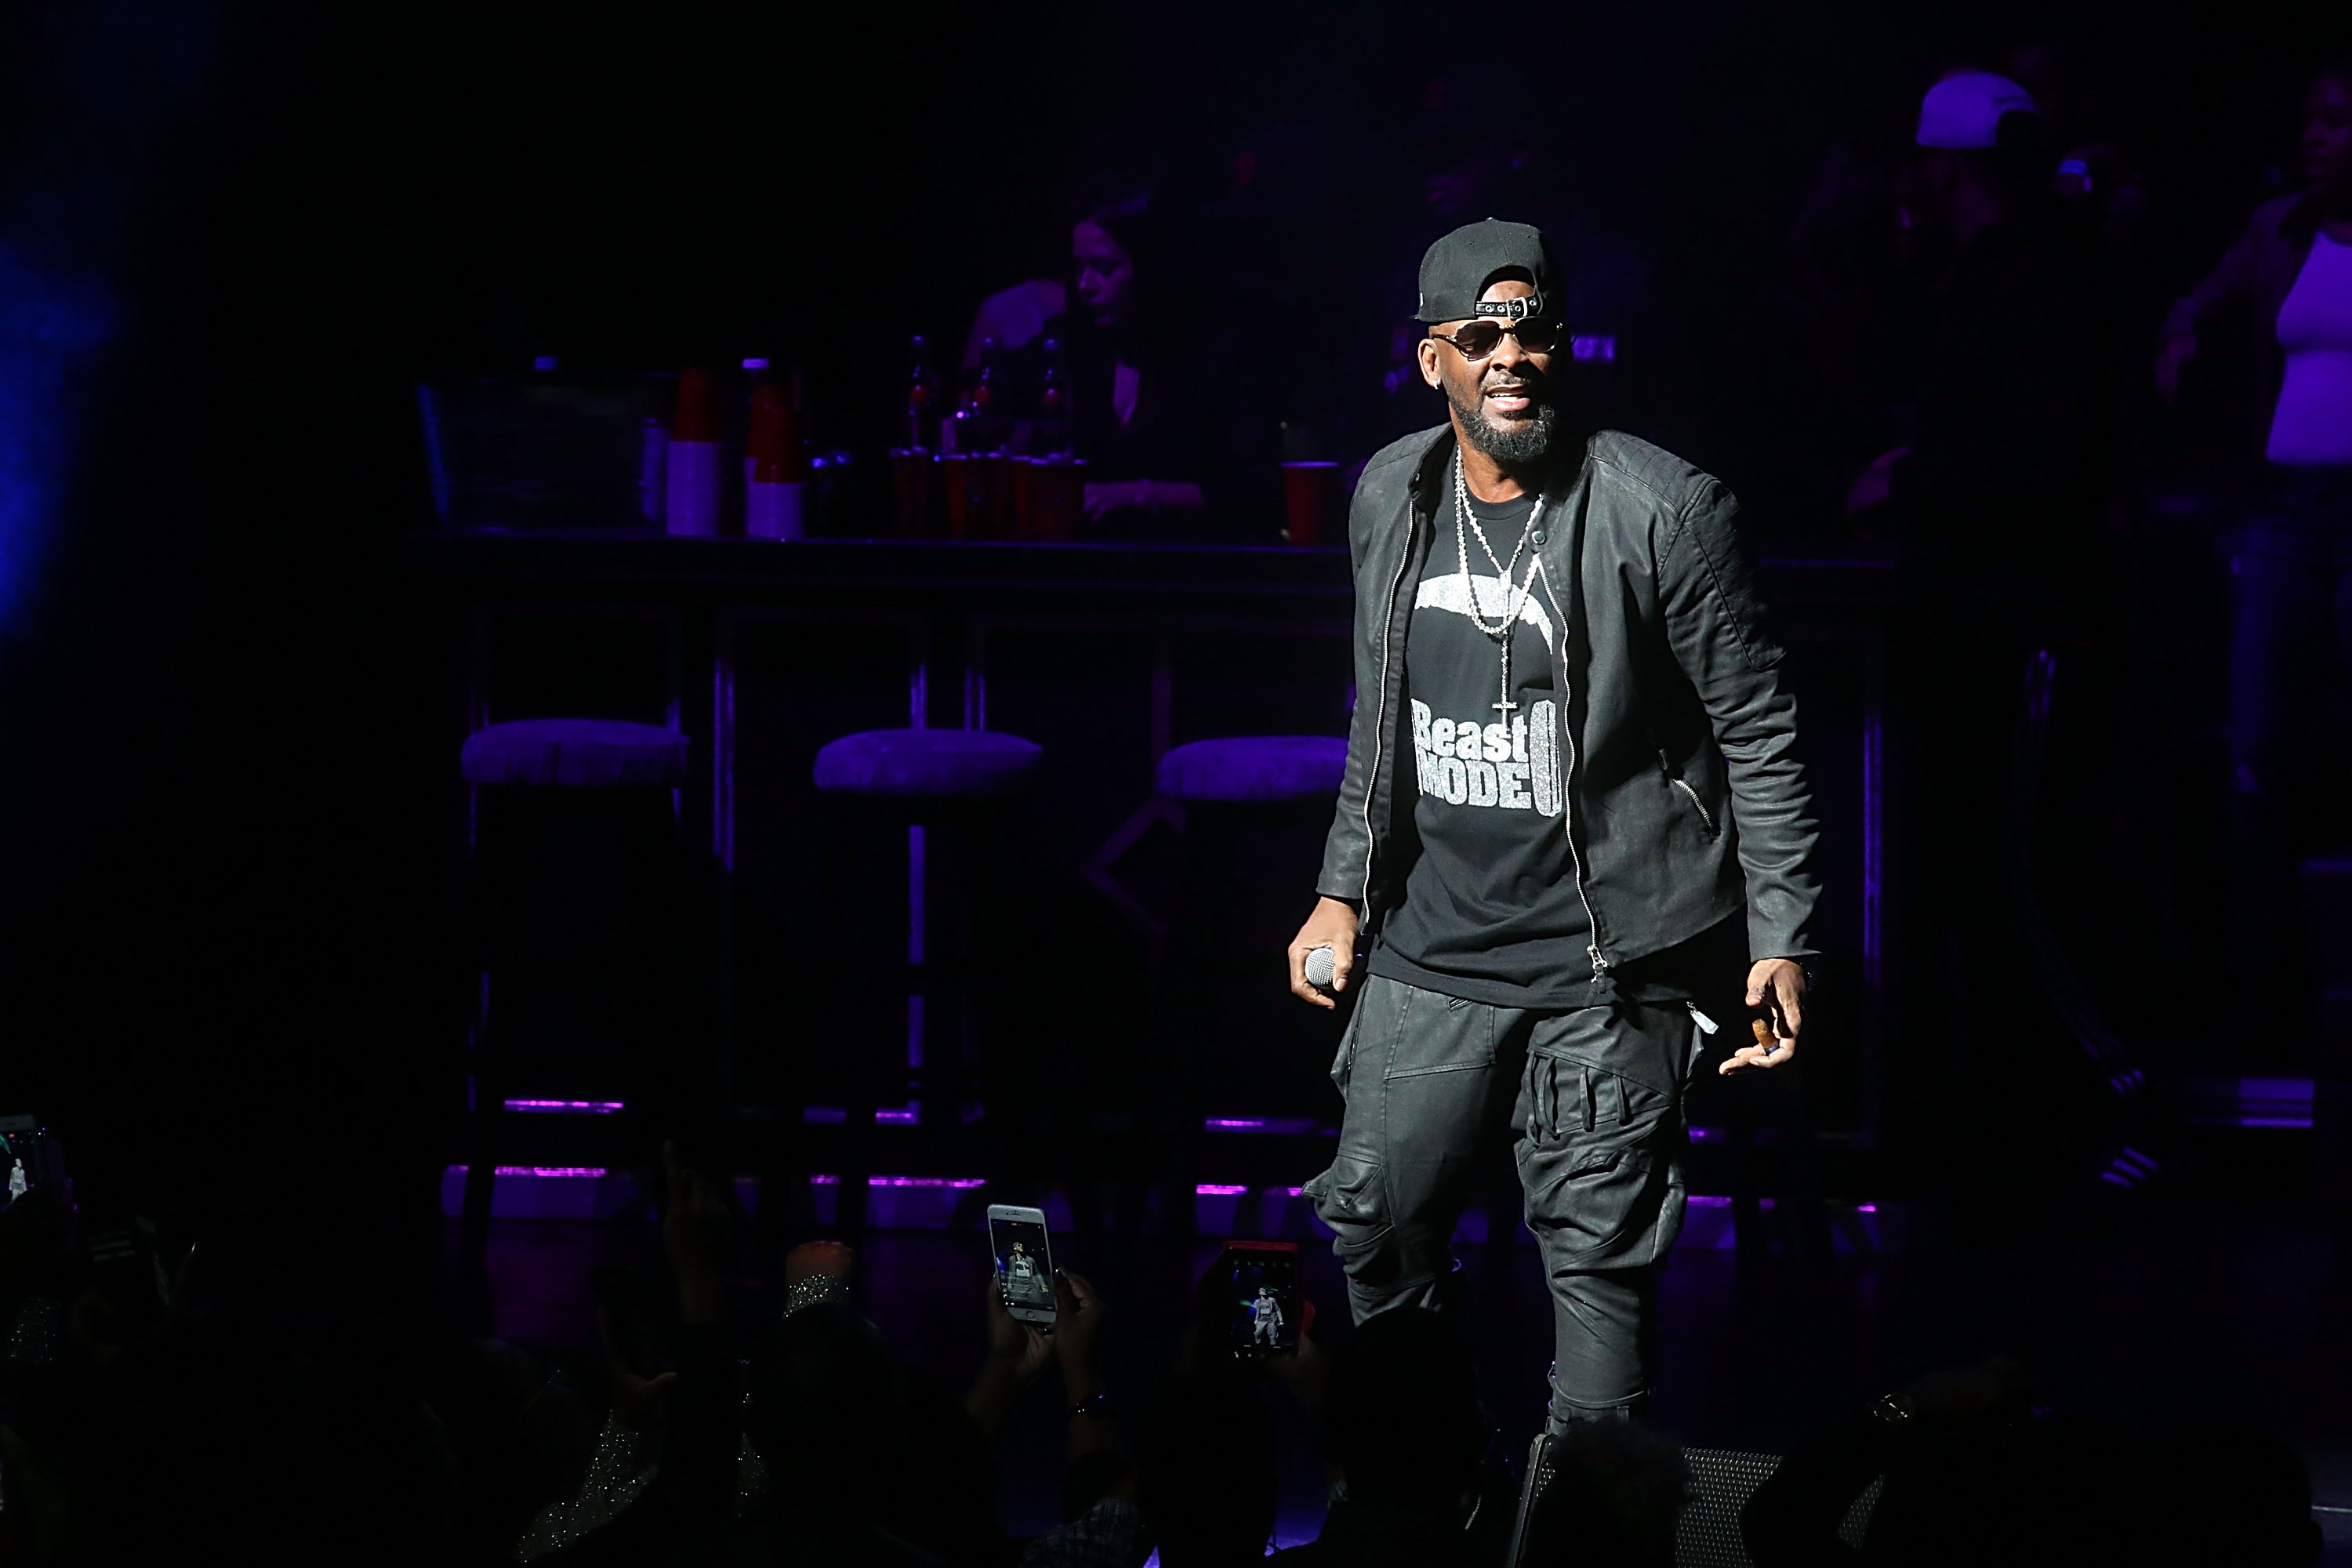 R. Kelly performs in concert at The Bass Concert Hall in Austin, on March 3, 2017.